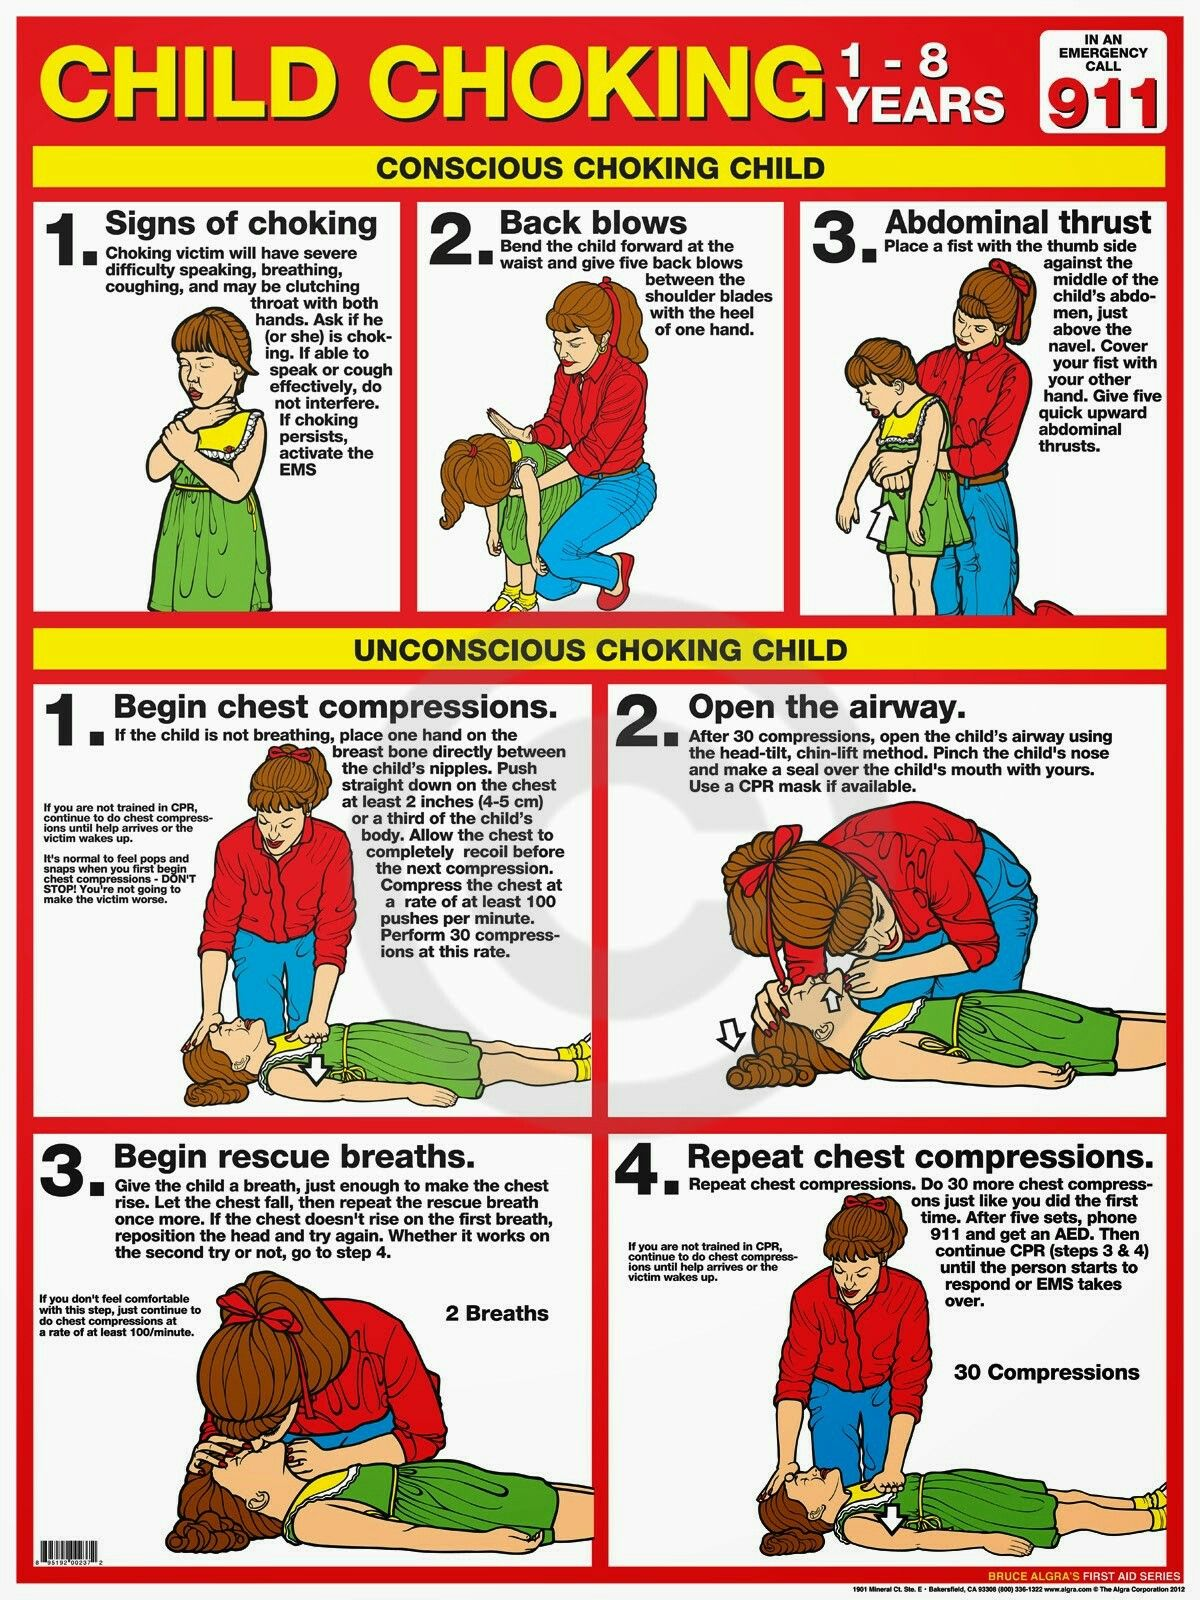 Pin By Dustin Summer On First Aid